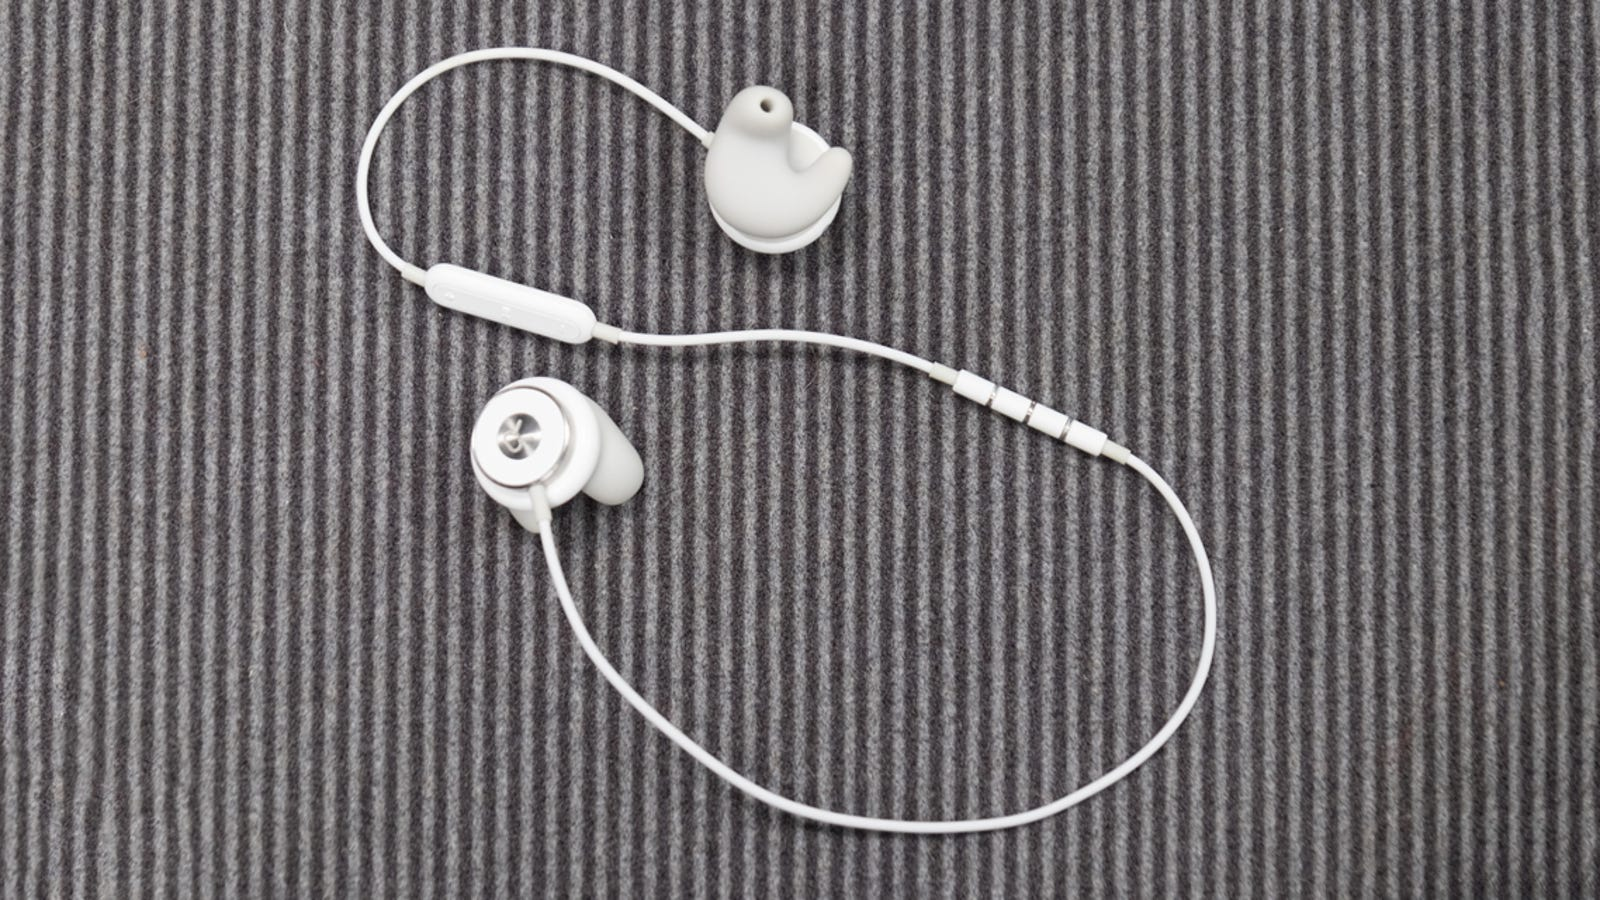 iphone 5s charger and earbuds